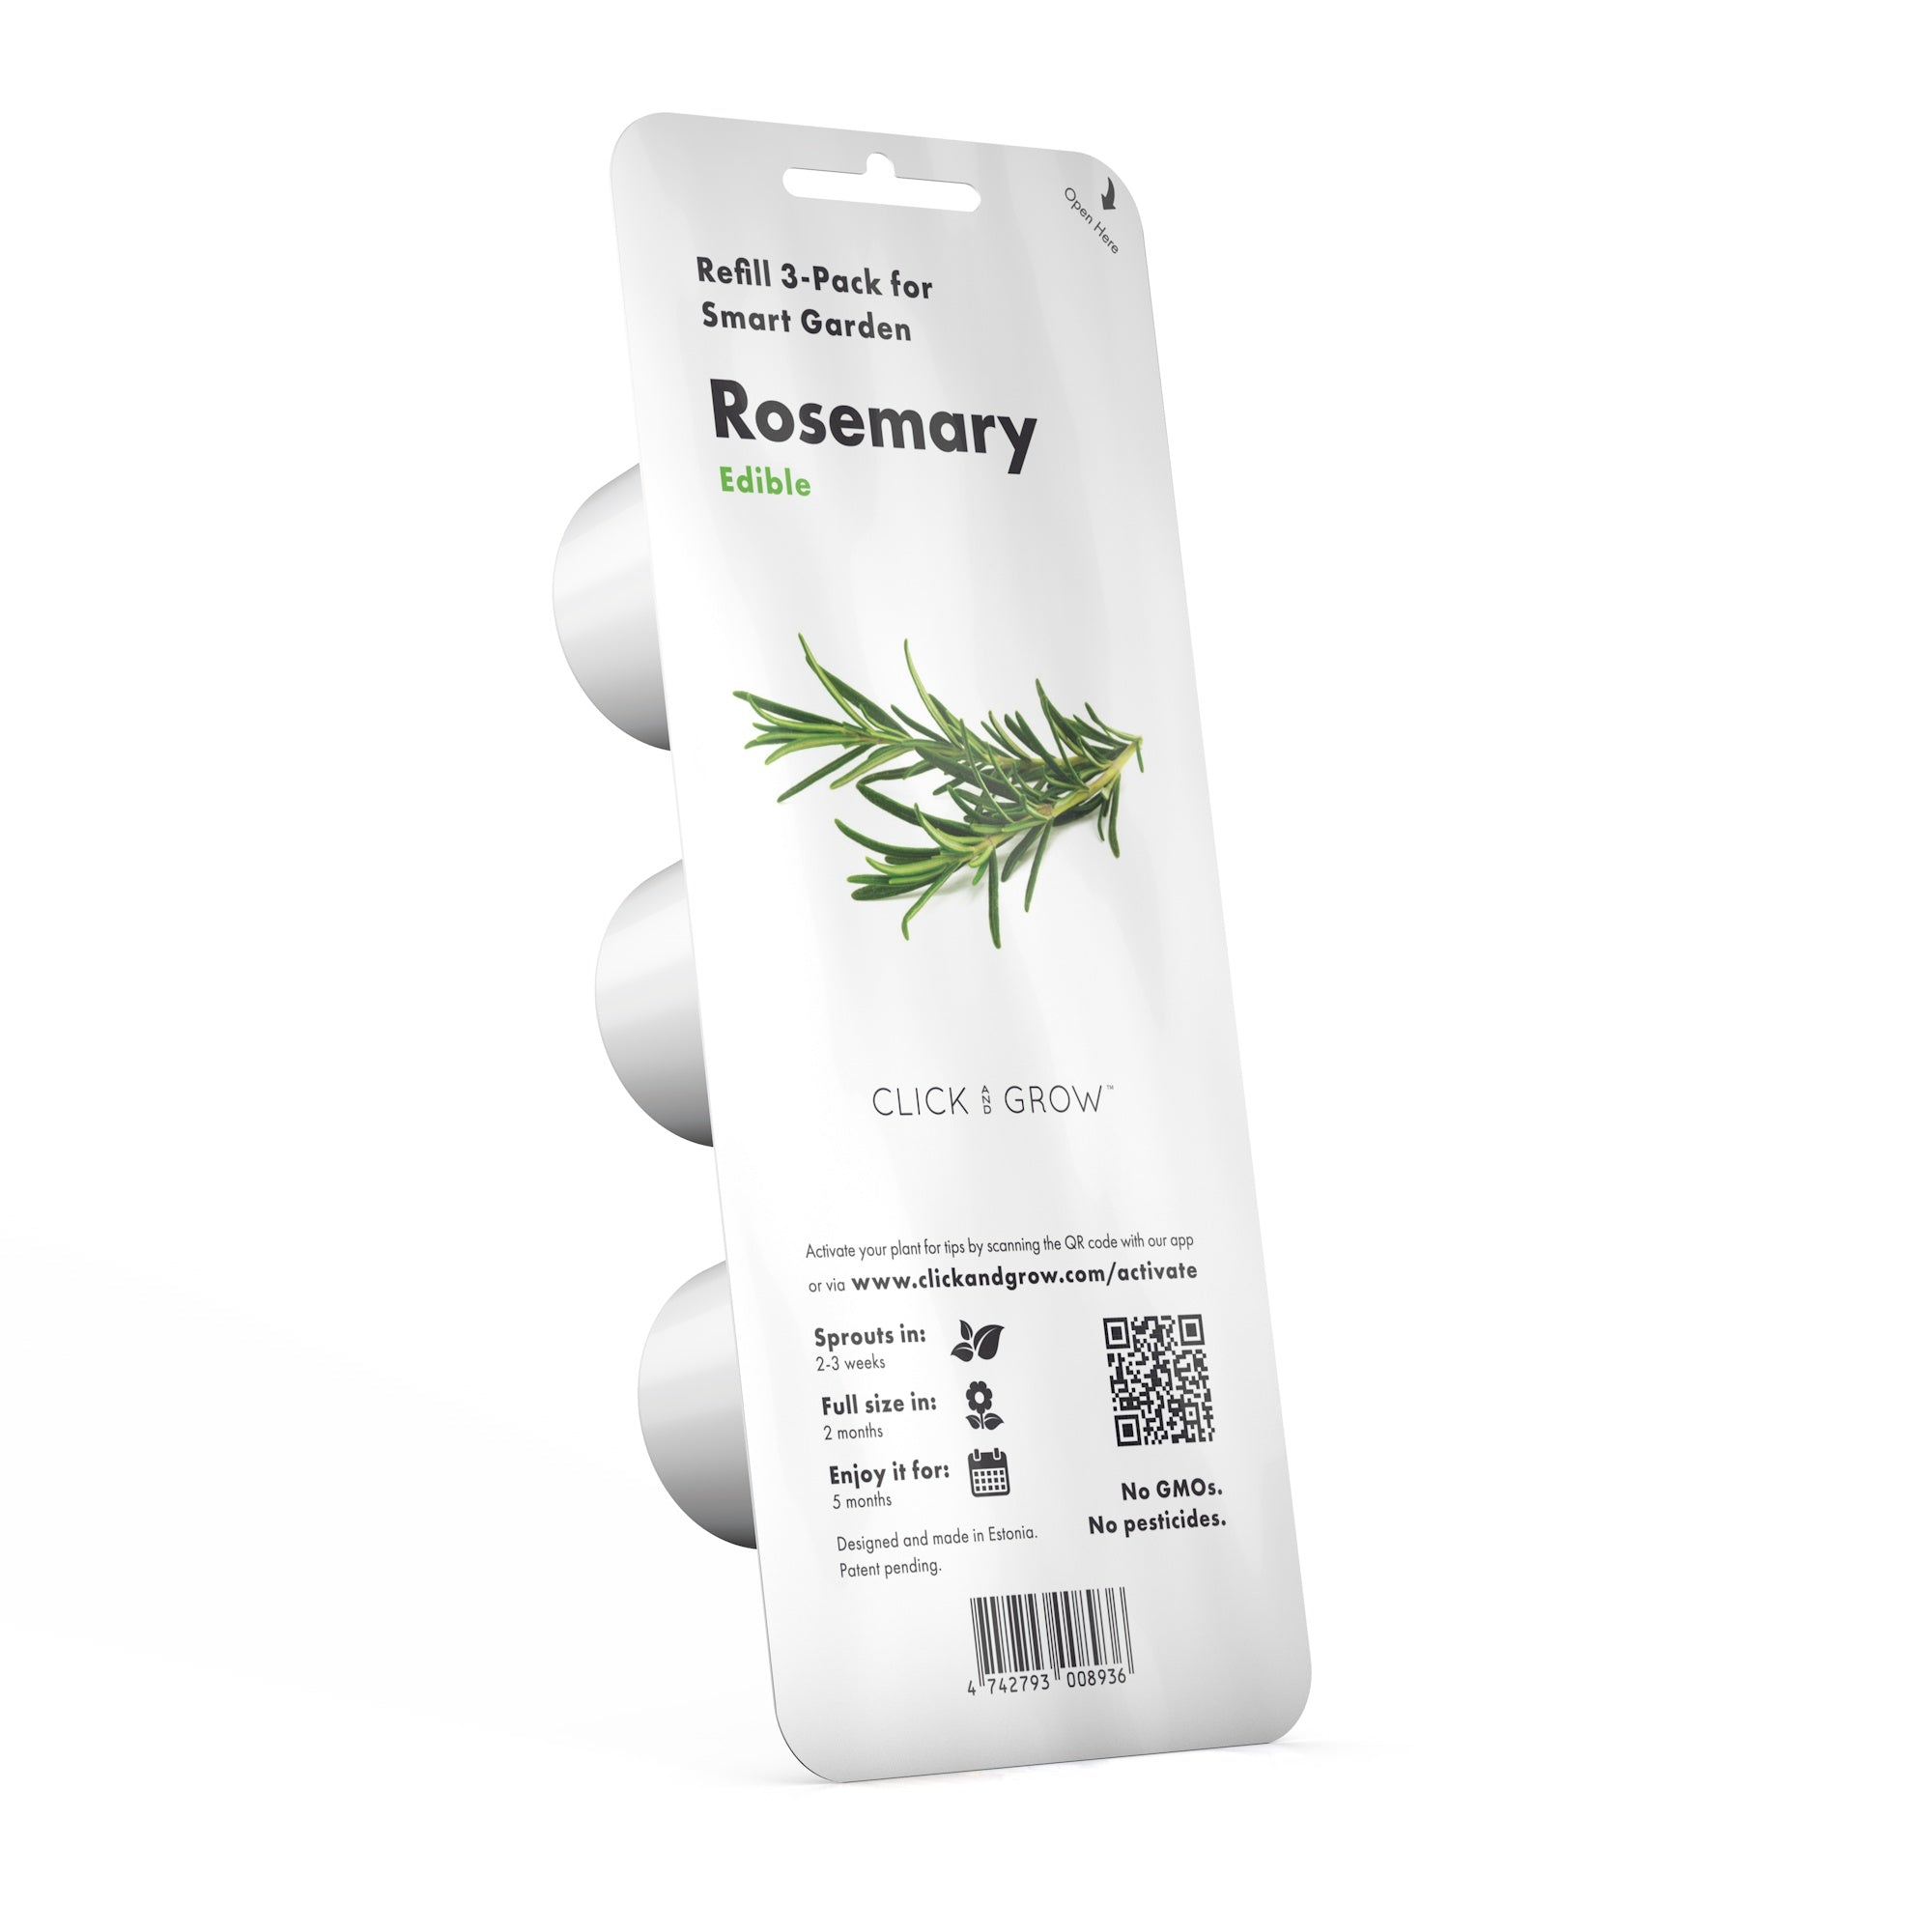 Growing rosemary (Rosmarinus officinalis) using Click & Grow's indoor garden. Cooking with Rosemary and Rosemary Oil Benefits.